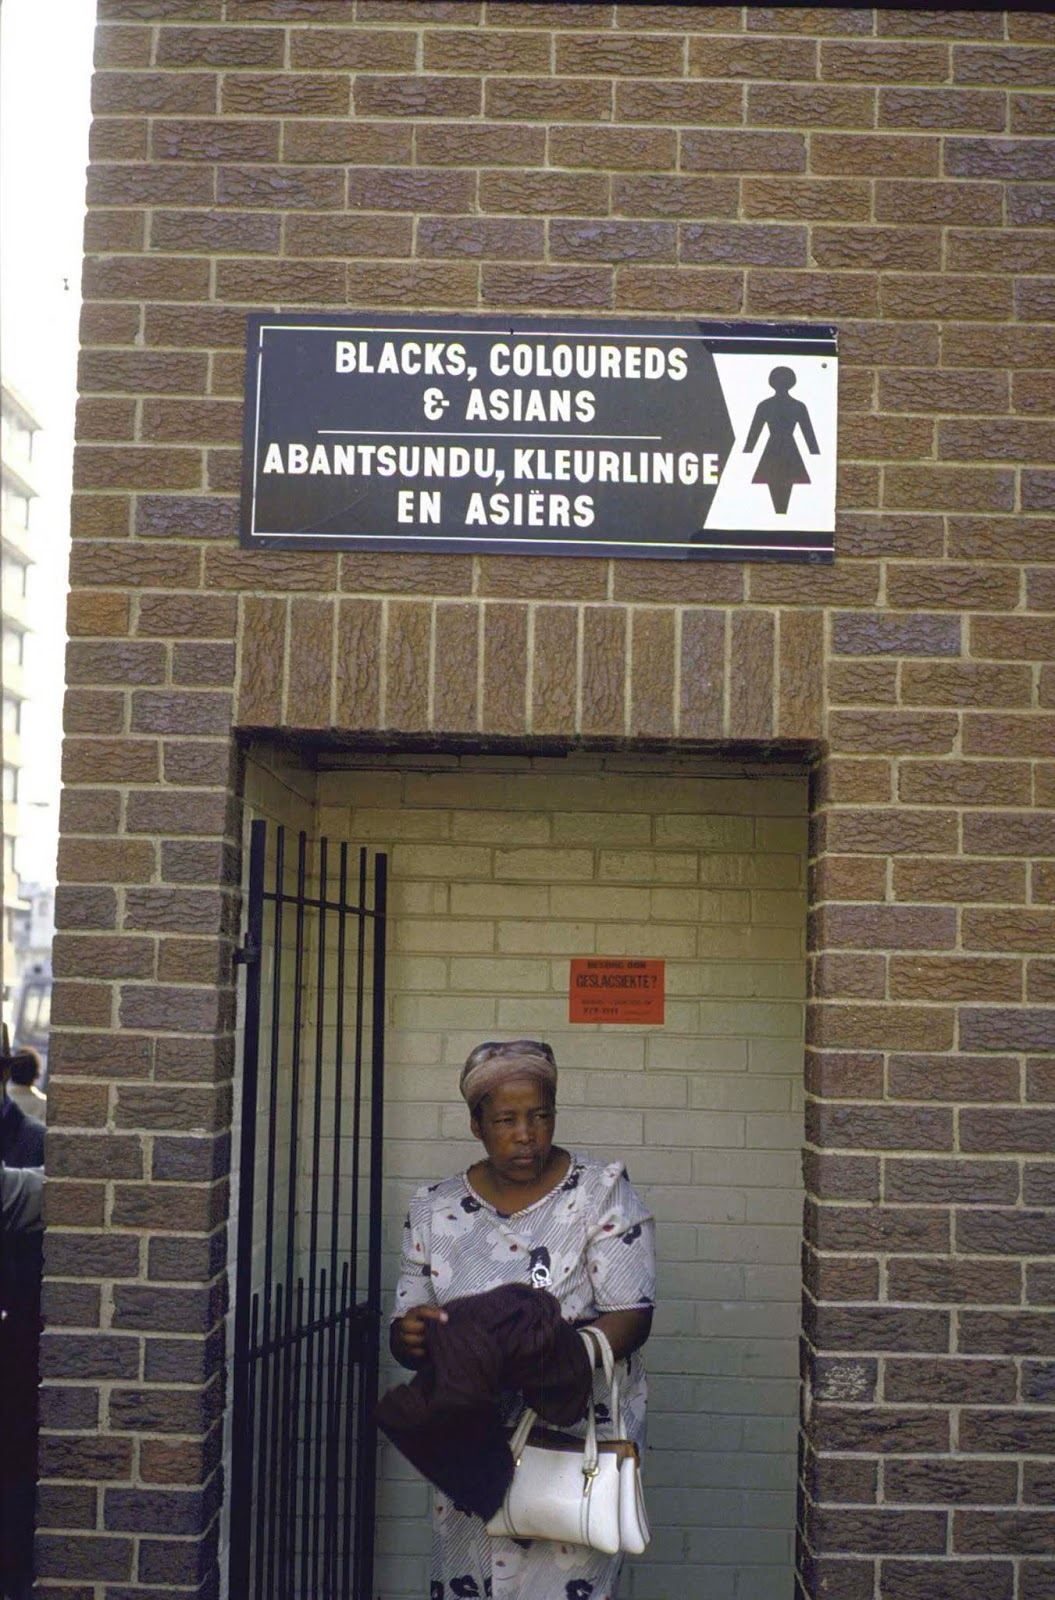 Toilets restricted to use by